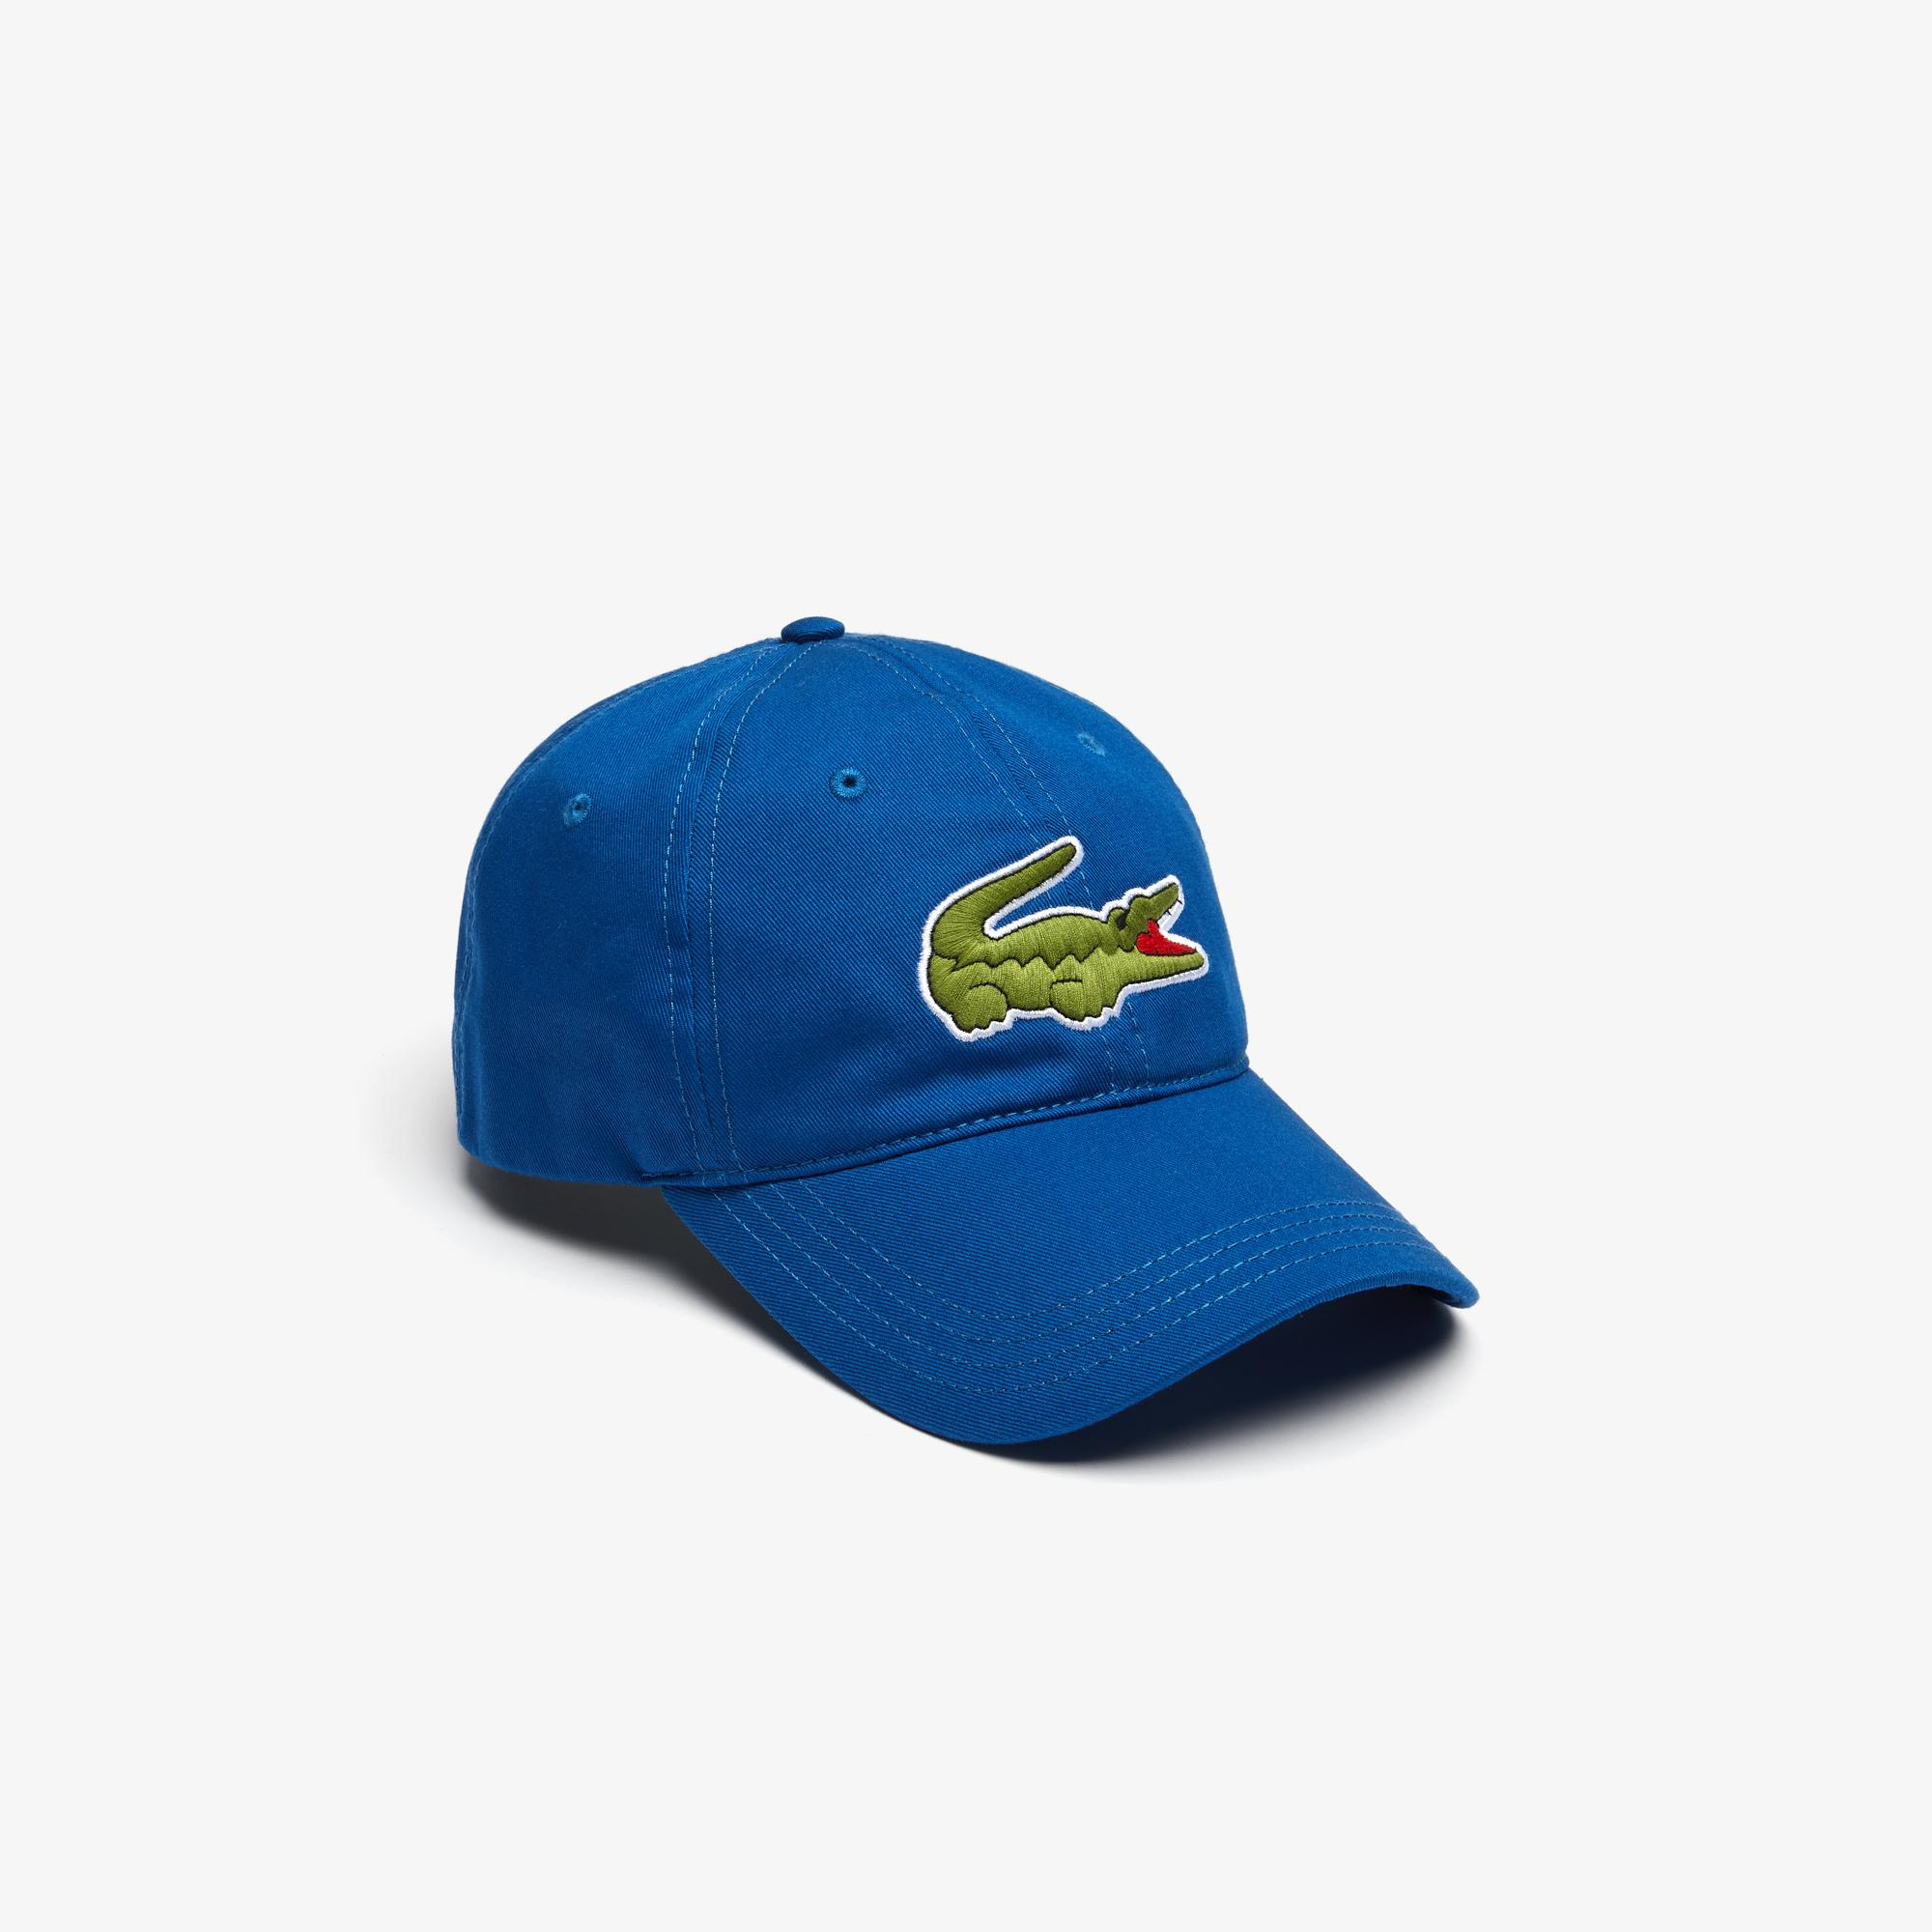 Lacoste Men's Contrast Strap And Oversized Crocodile Cotton Cap